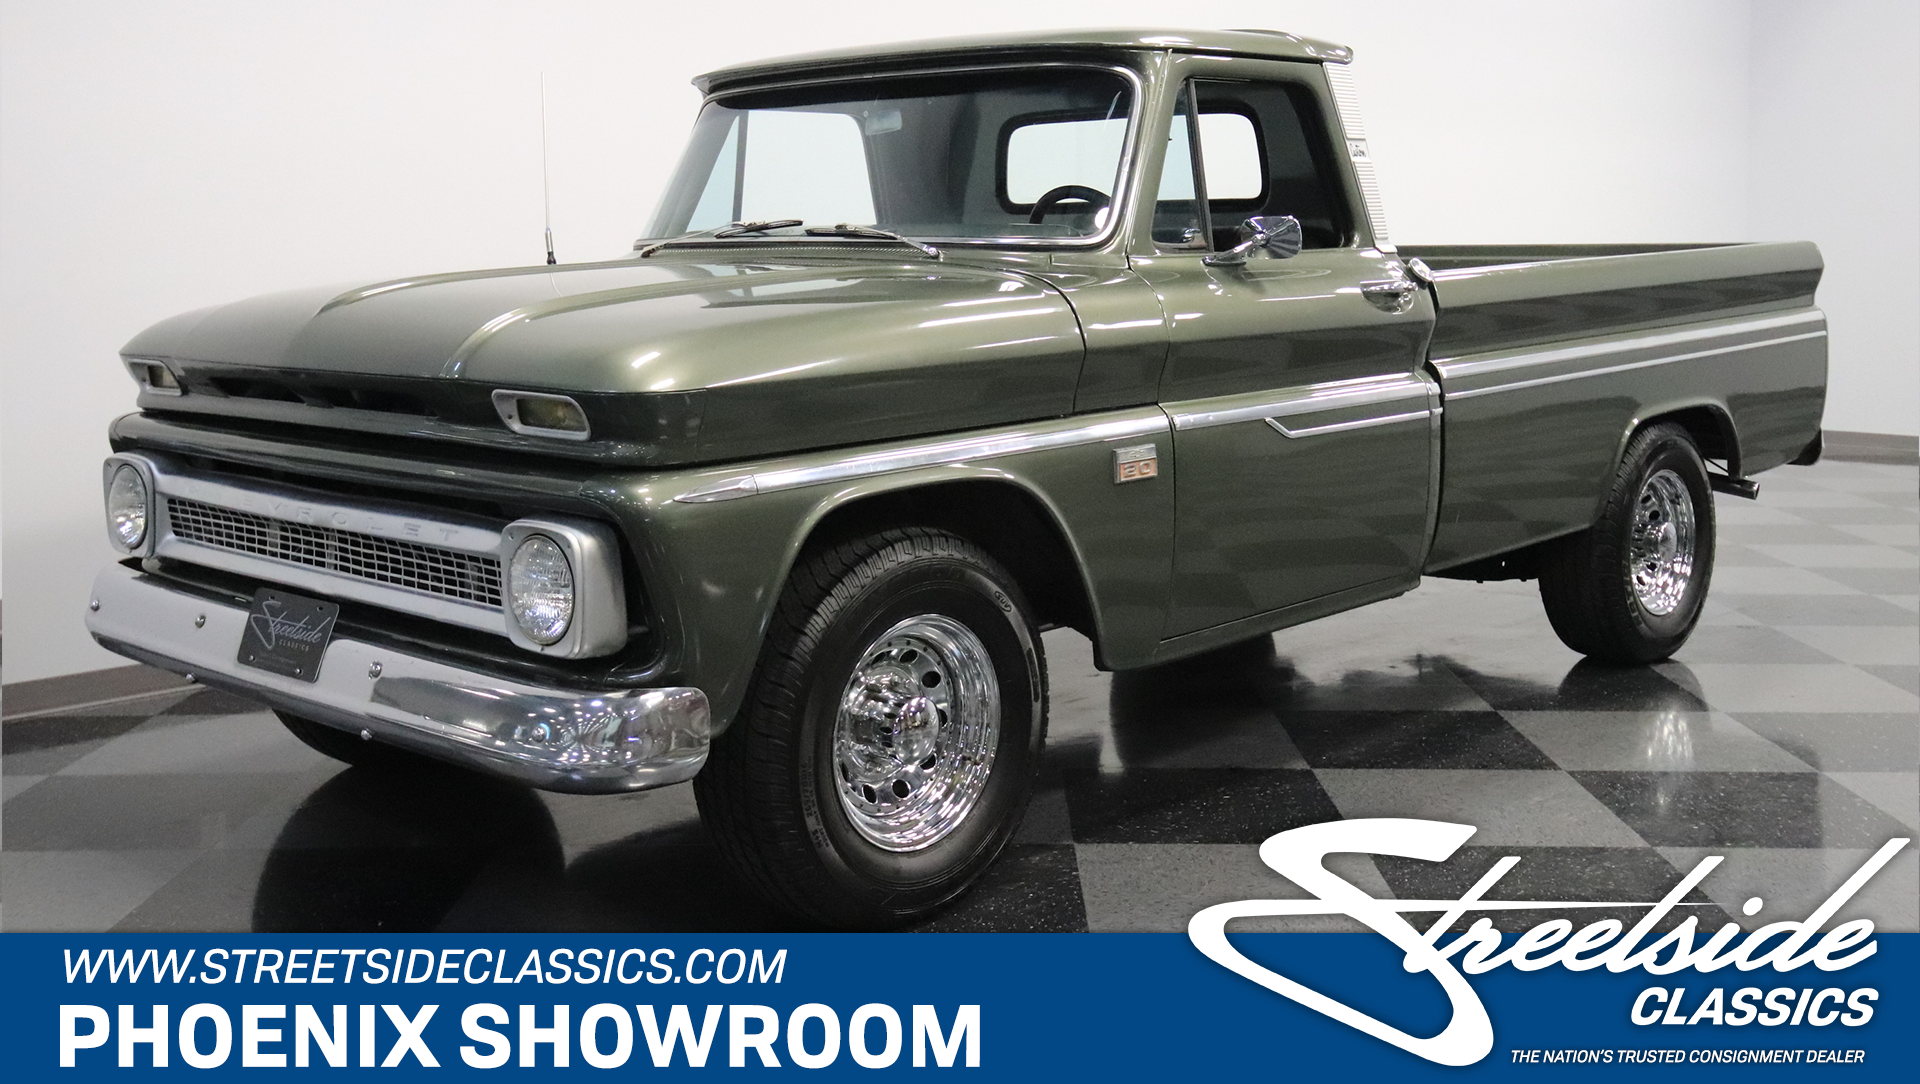 1966 Chevrolet C20 Streetside Classics The Nations Trusted Pickup Truck Play Video